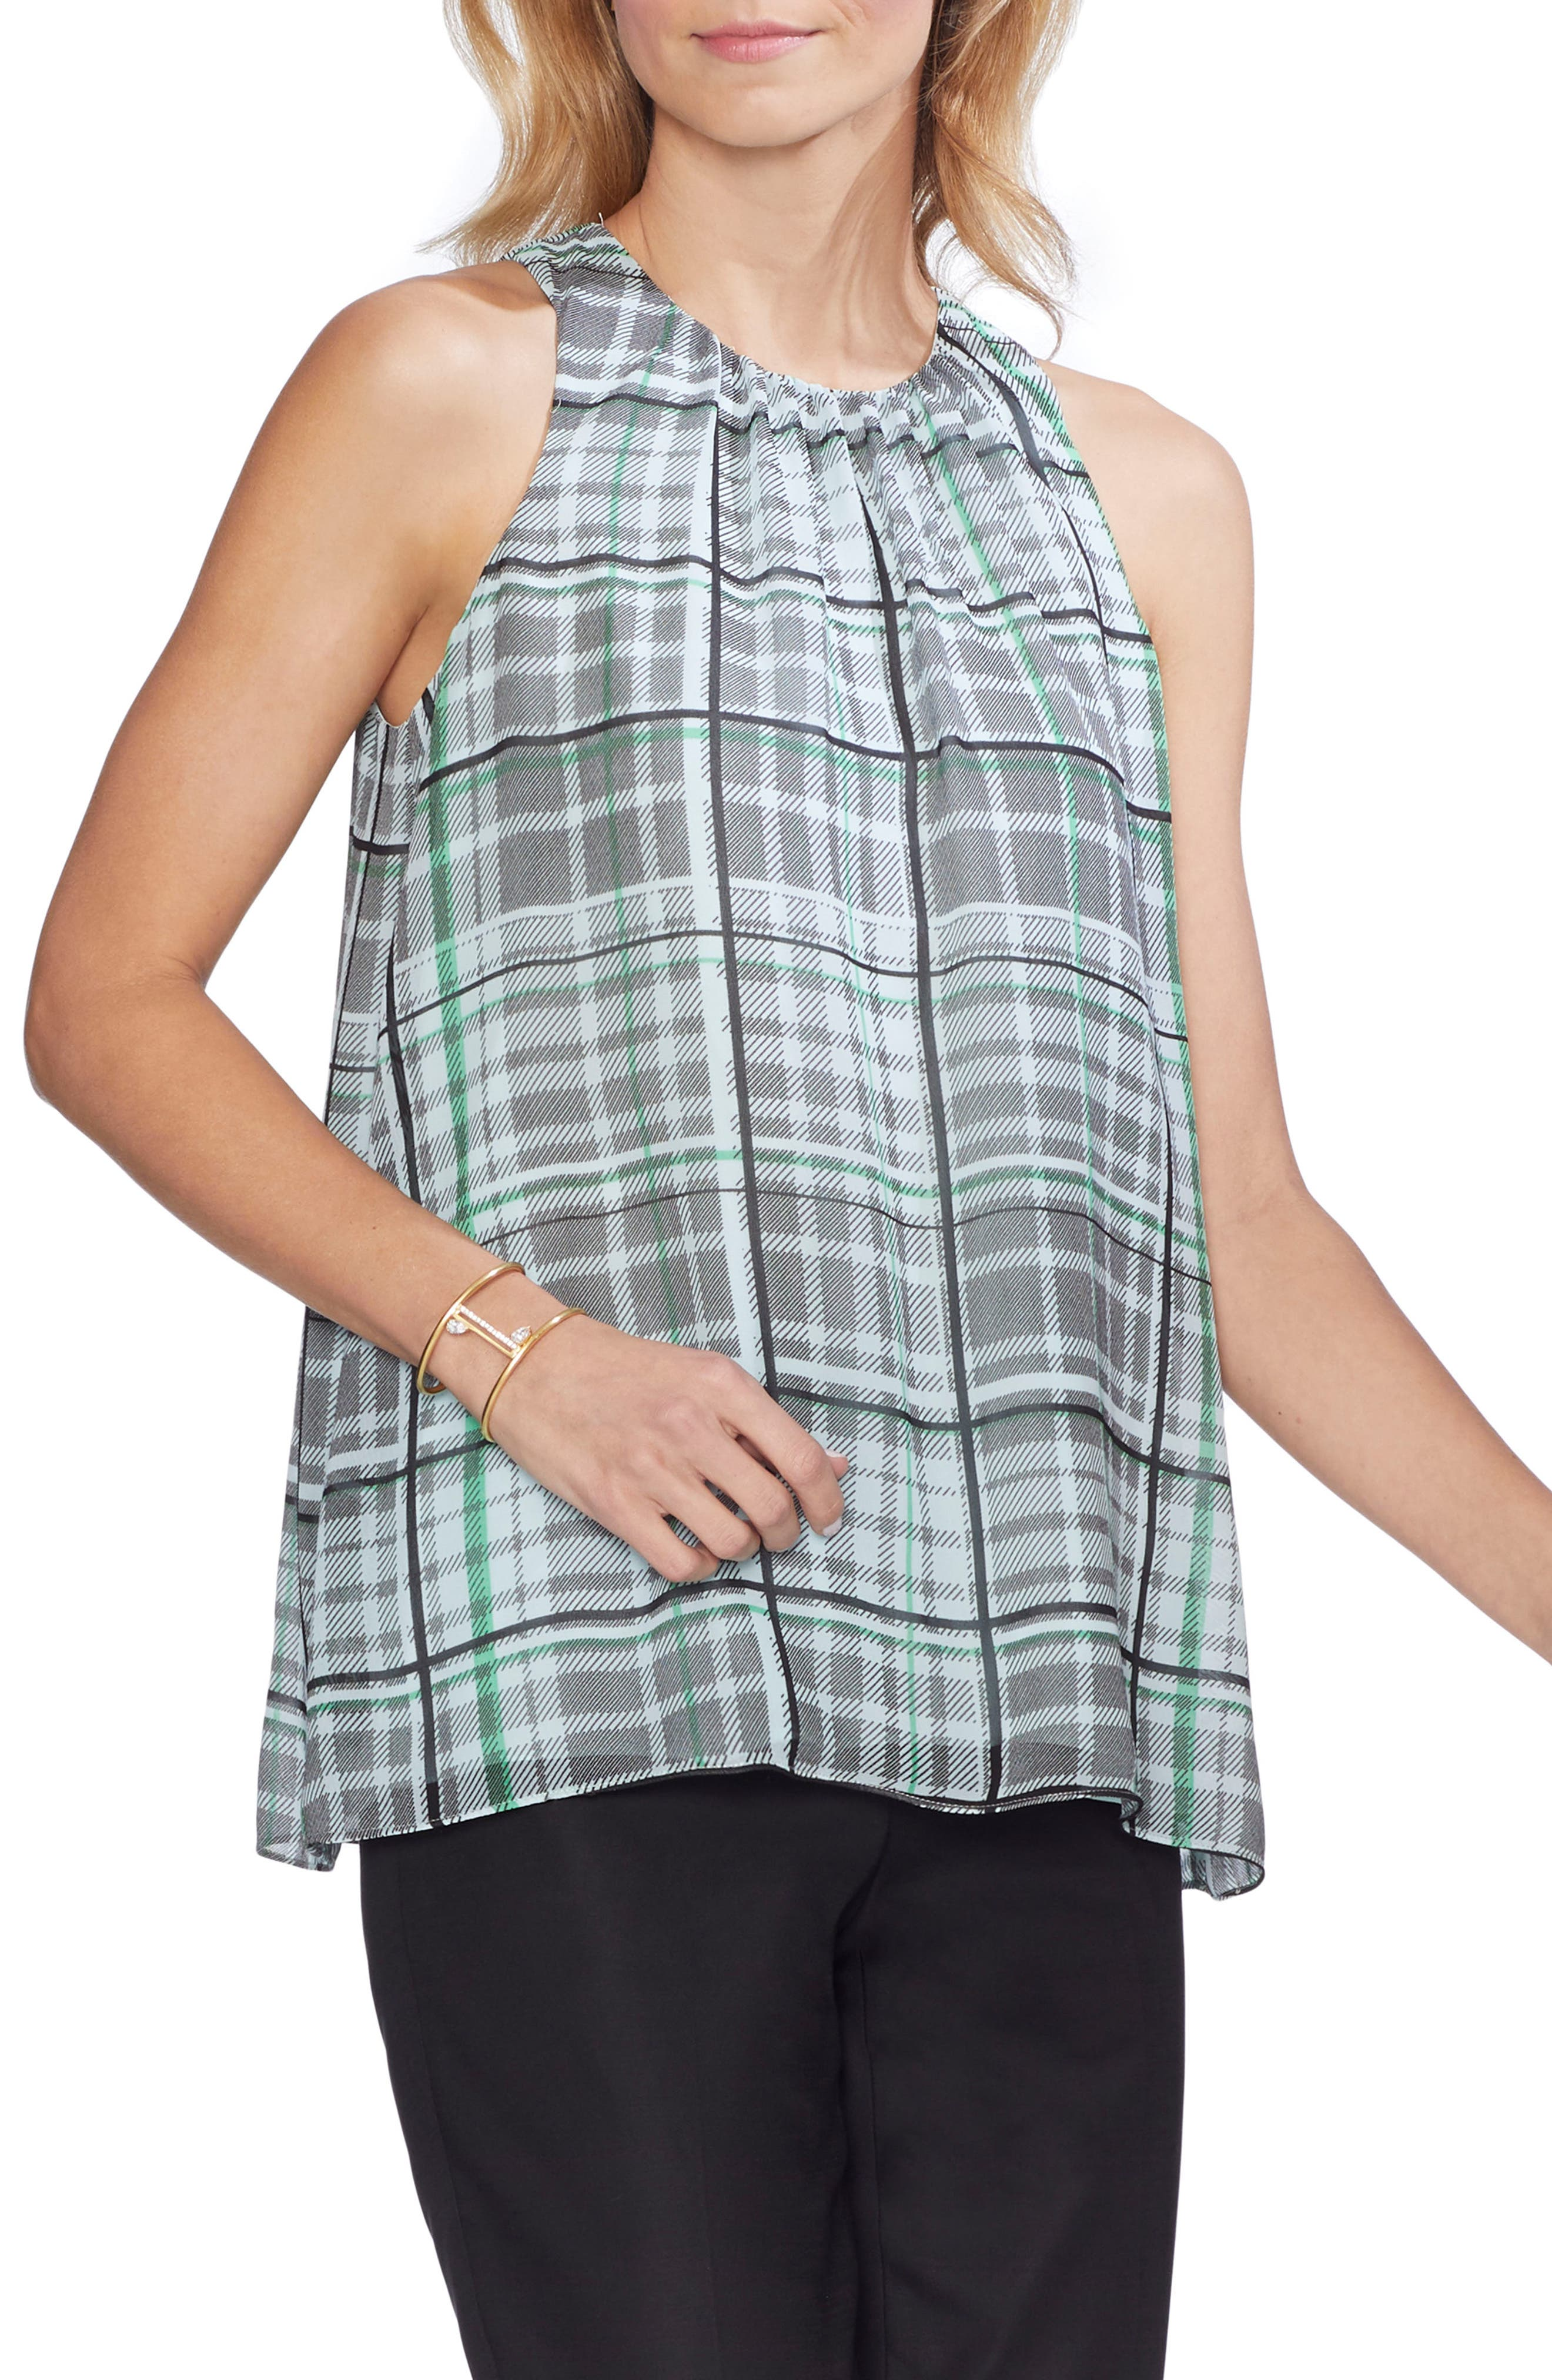 Plaid Shades Sleeveless Blouse in Light Seaglass